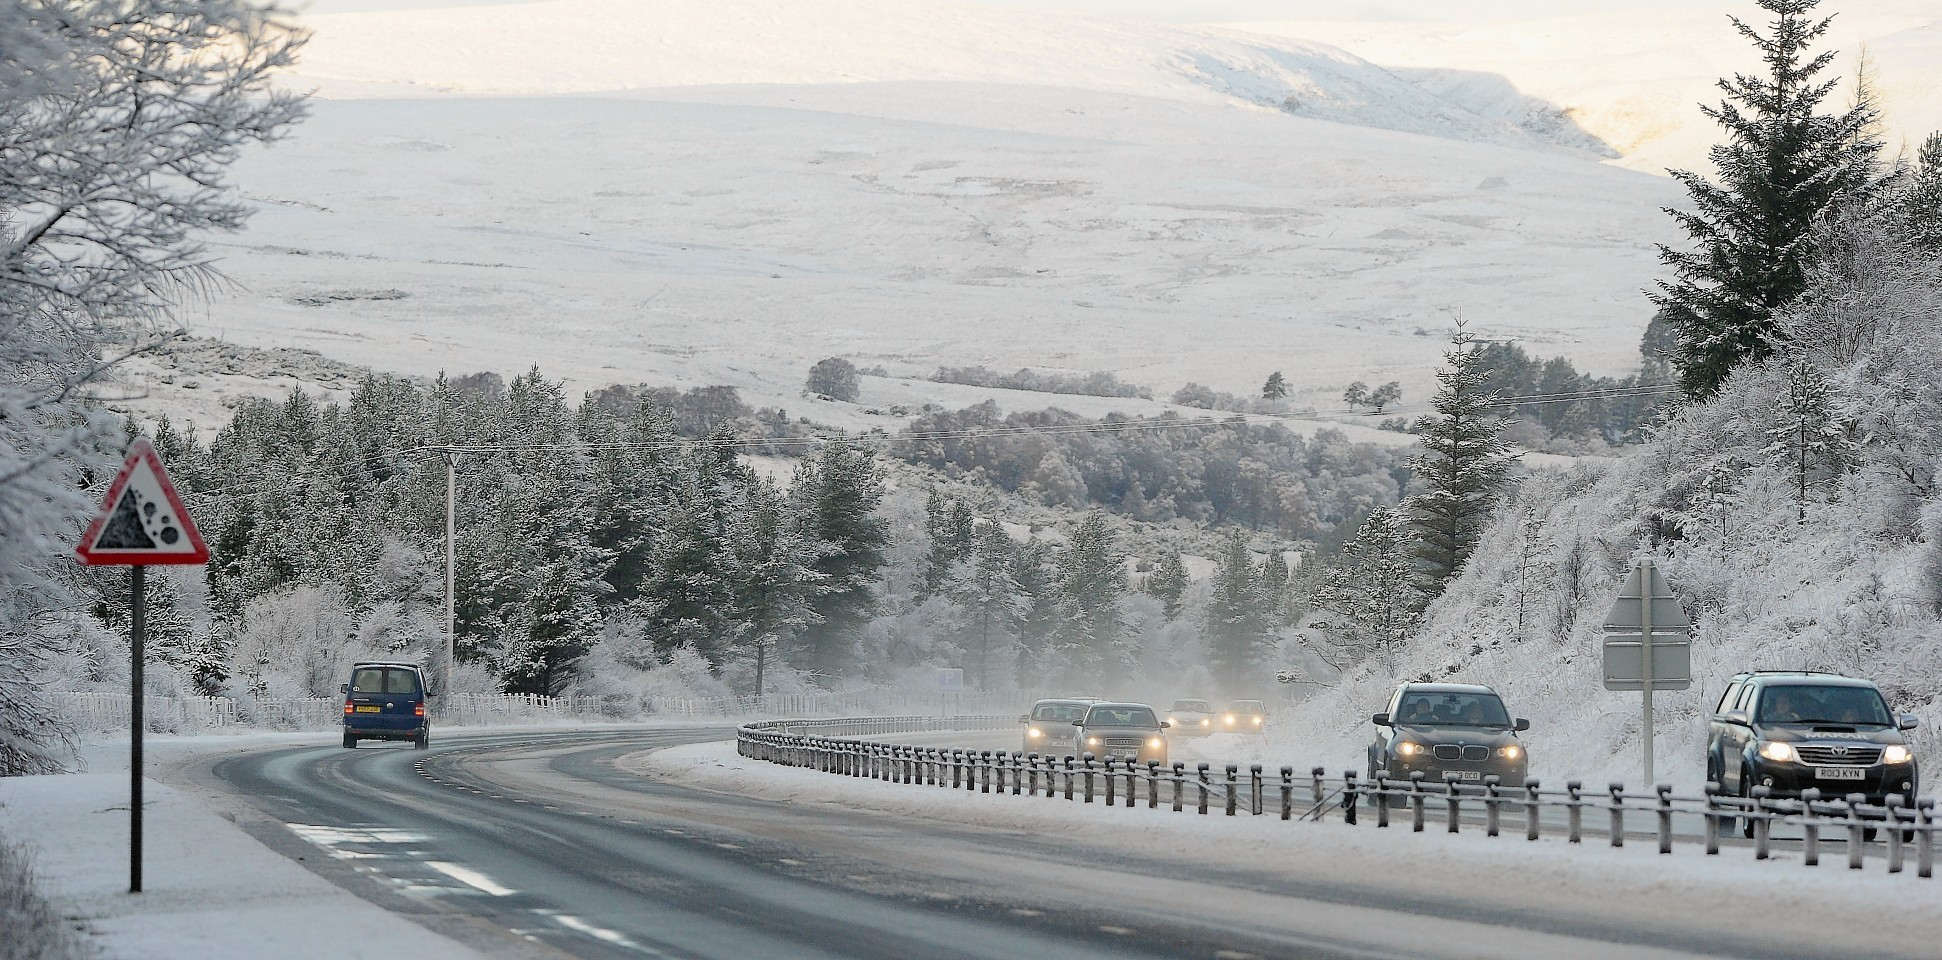 The Met Office are warning of snow later this week